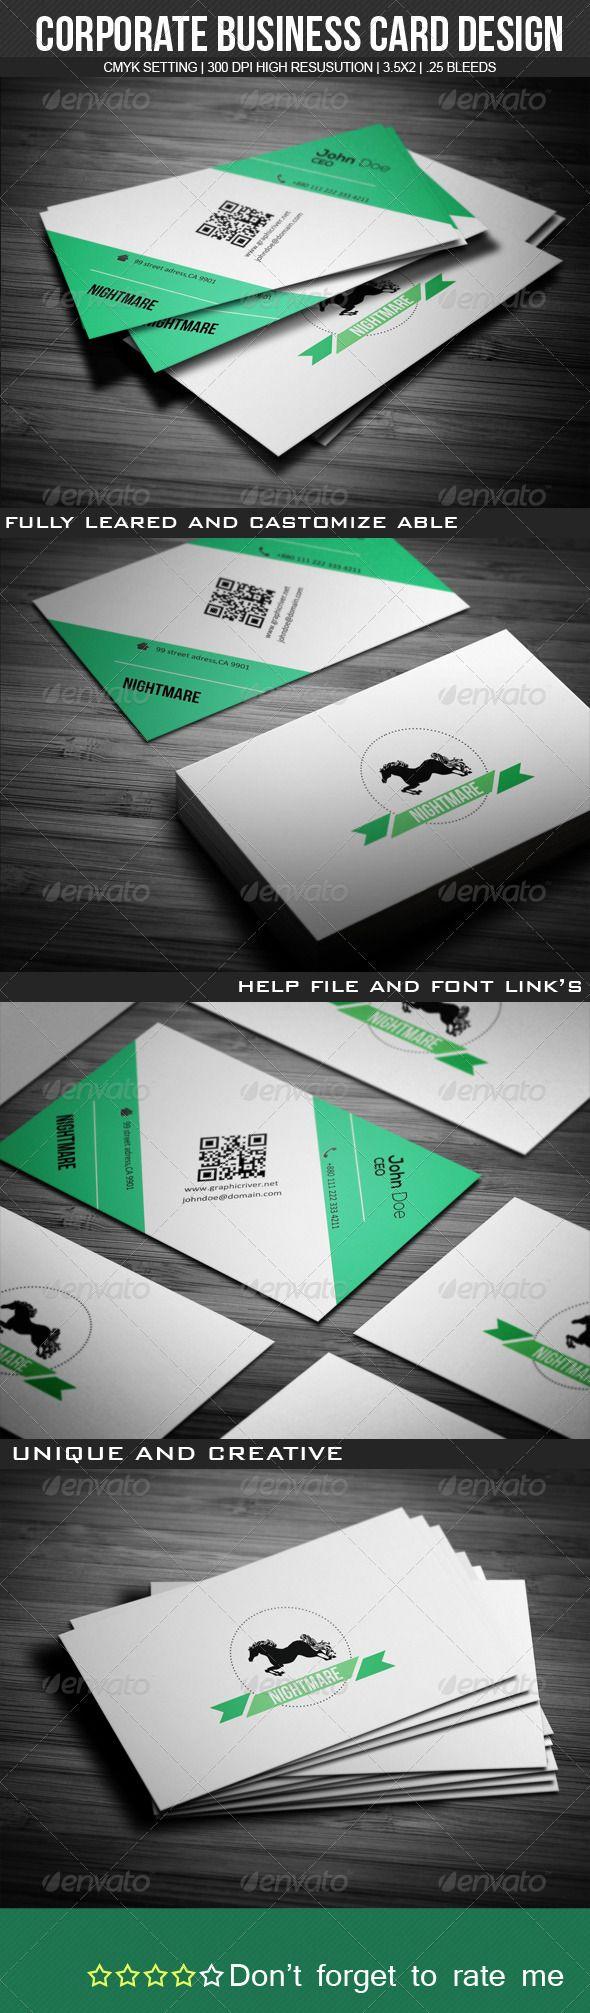 Nightmare Corporate Business Card  #GraphicRiver         This business card templates which can be used for almost any kind of company or even personal use.  	 All text layers can be changed with one click. Each card also comes with unlimited color variations can be adjusted by using the Hue/Saturation layer or using the layer Blending Options for a more advanced way.  	 Font Links 1. Bebas Neue: .dafont /bebas-neue.font 2. Nexa:  .fontsquirrel /fonts/nexa 3. Calibri:  .fonts…